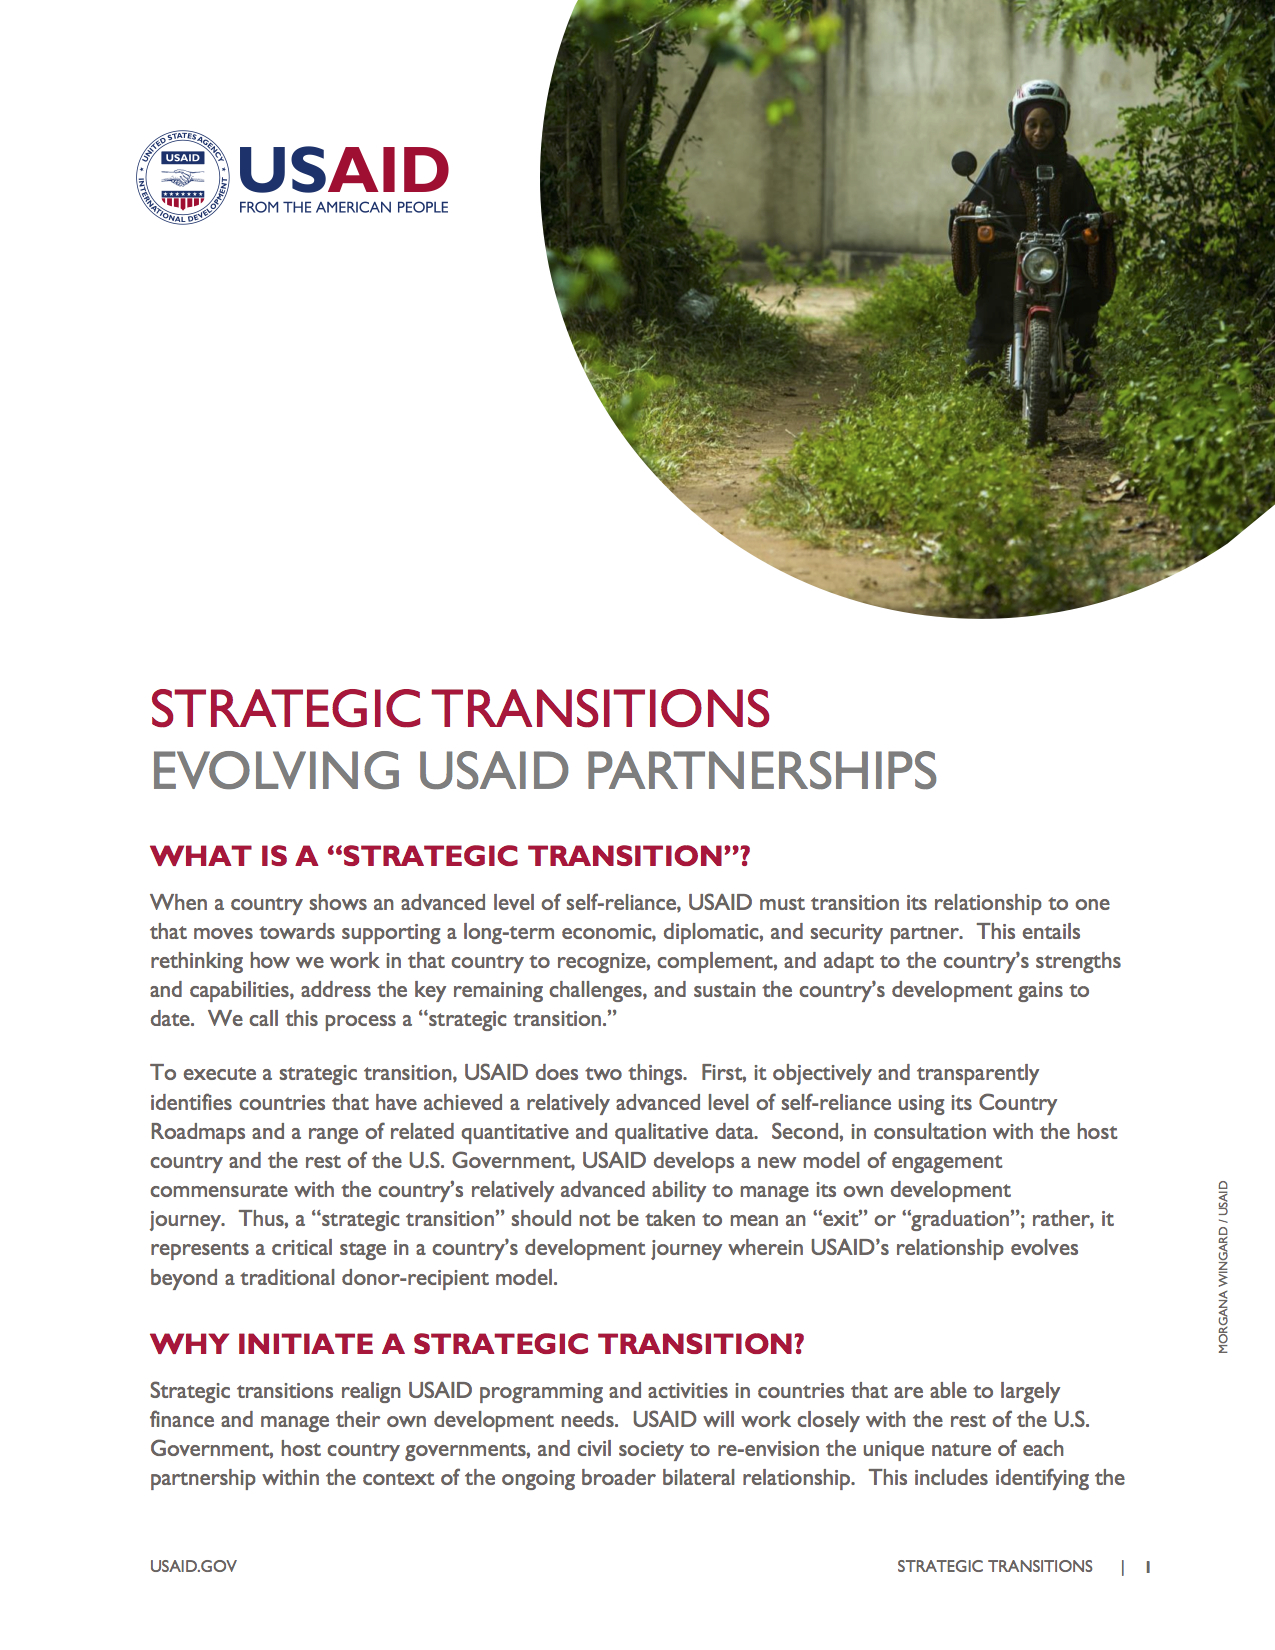 Strategic Transitions Fact Sheet